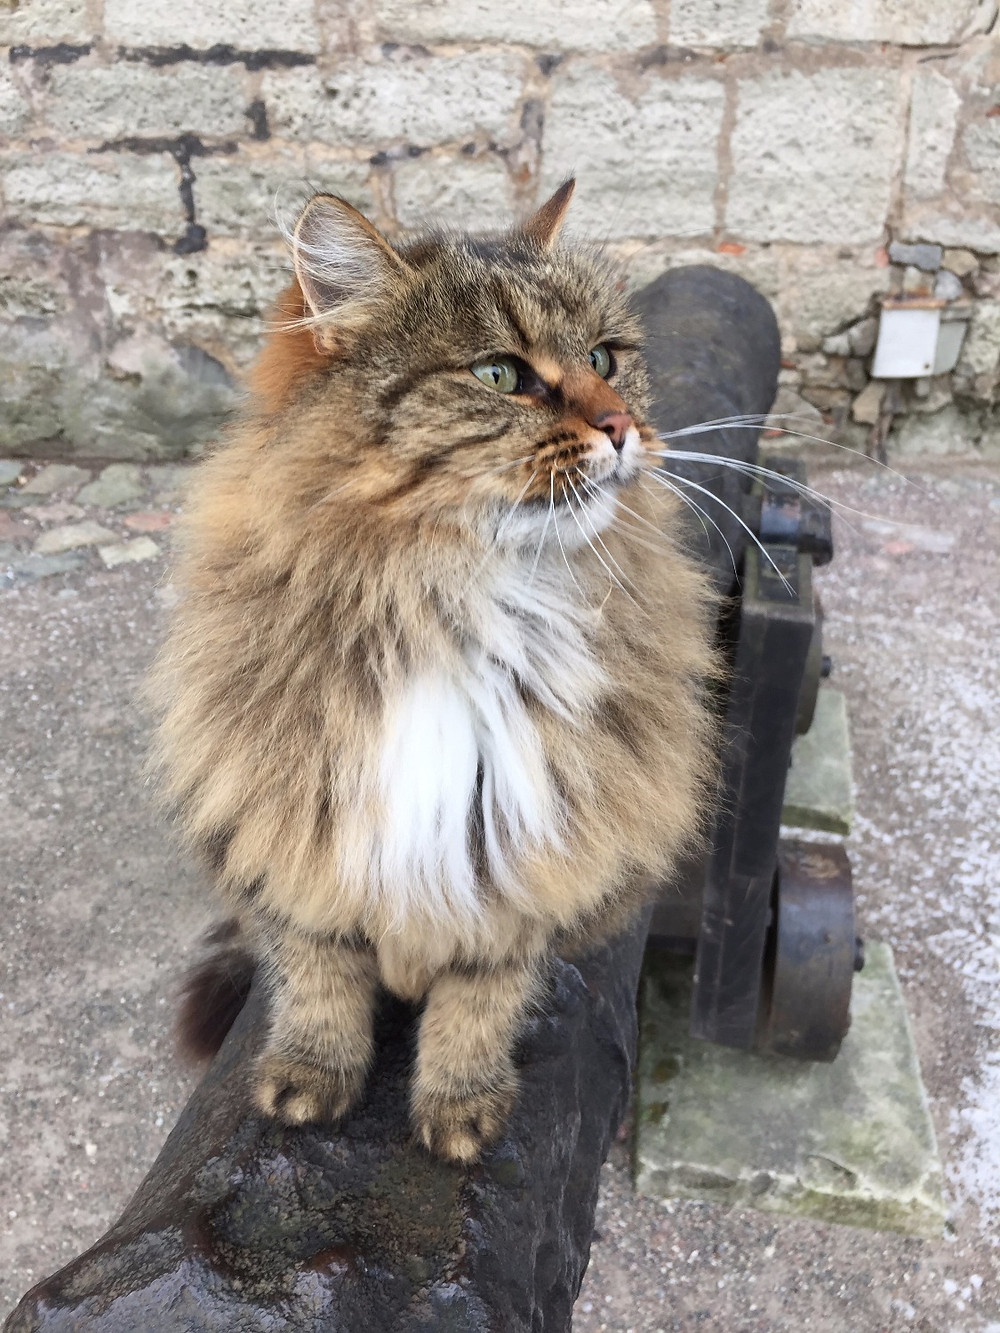 This feline friend keeps us company at the Kuressaare Castle on the island of Saaremaa, Estonia.